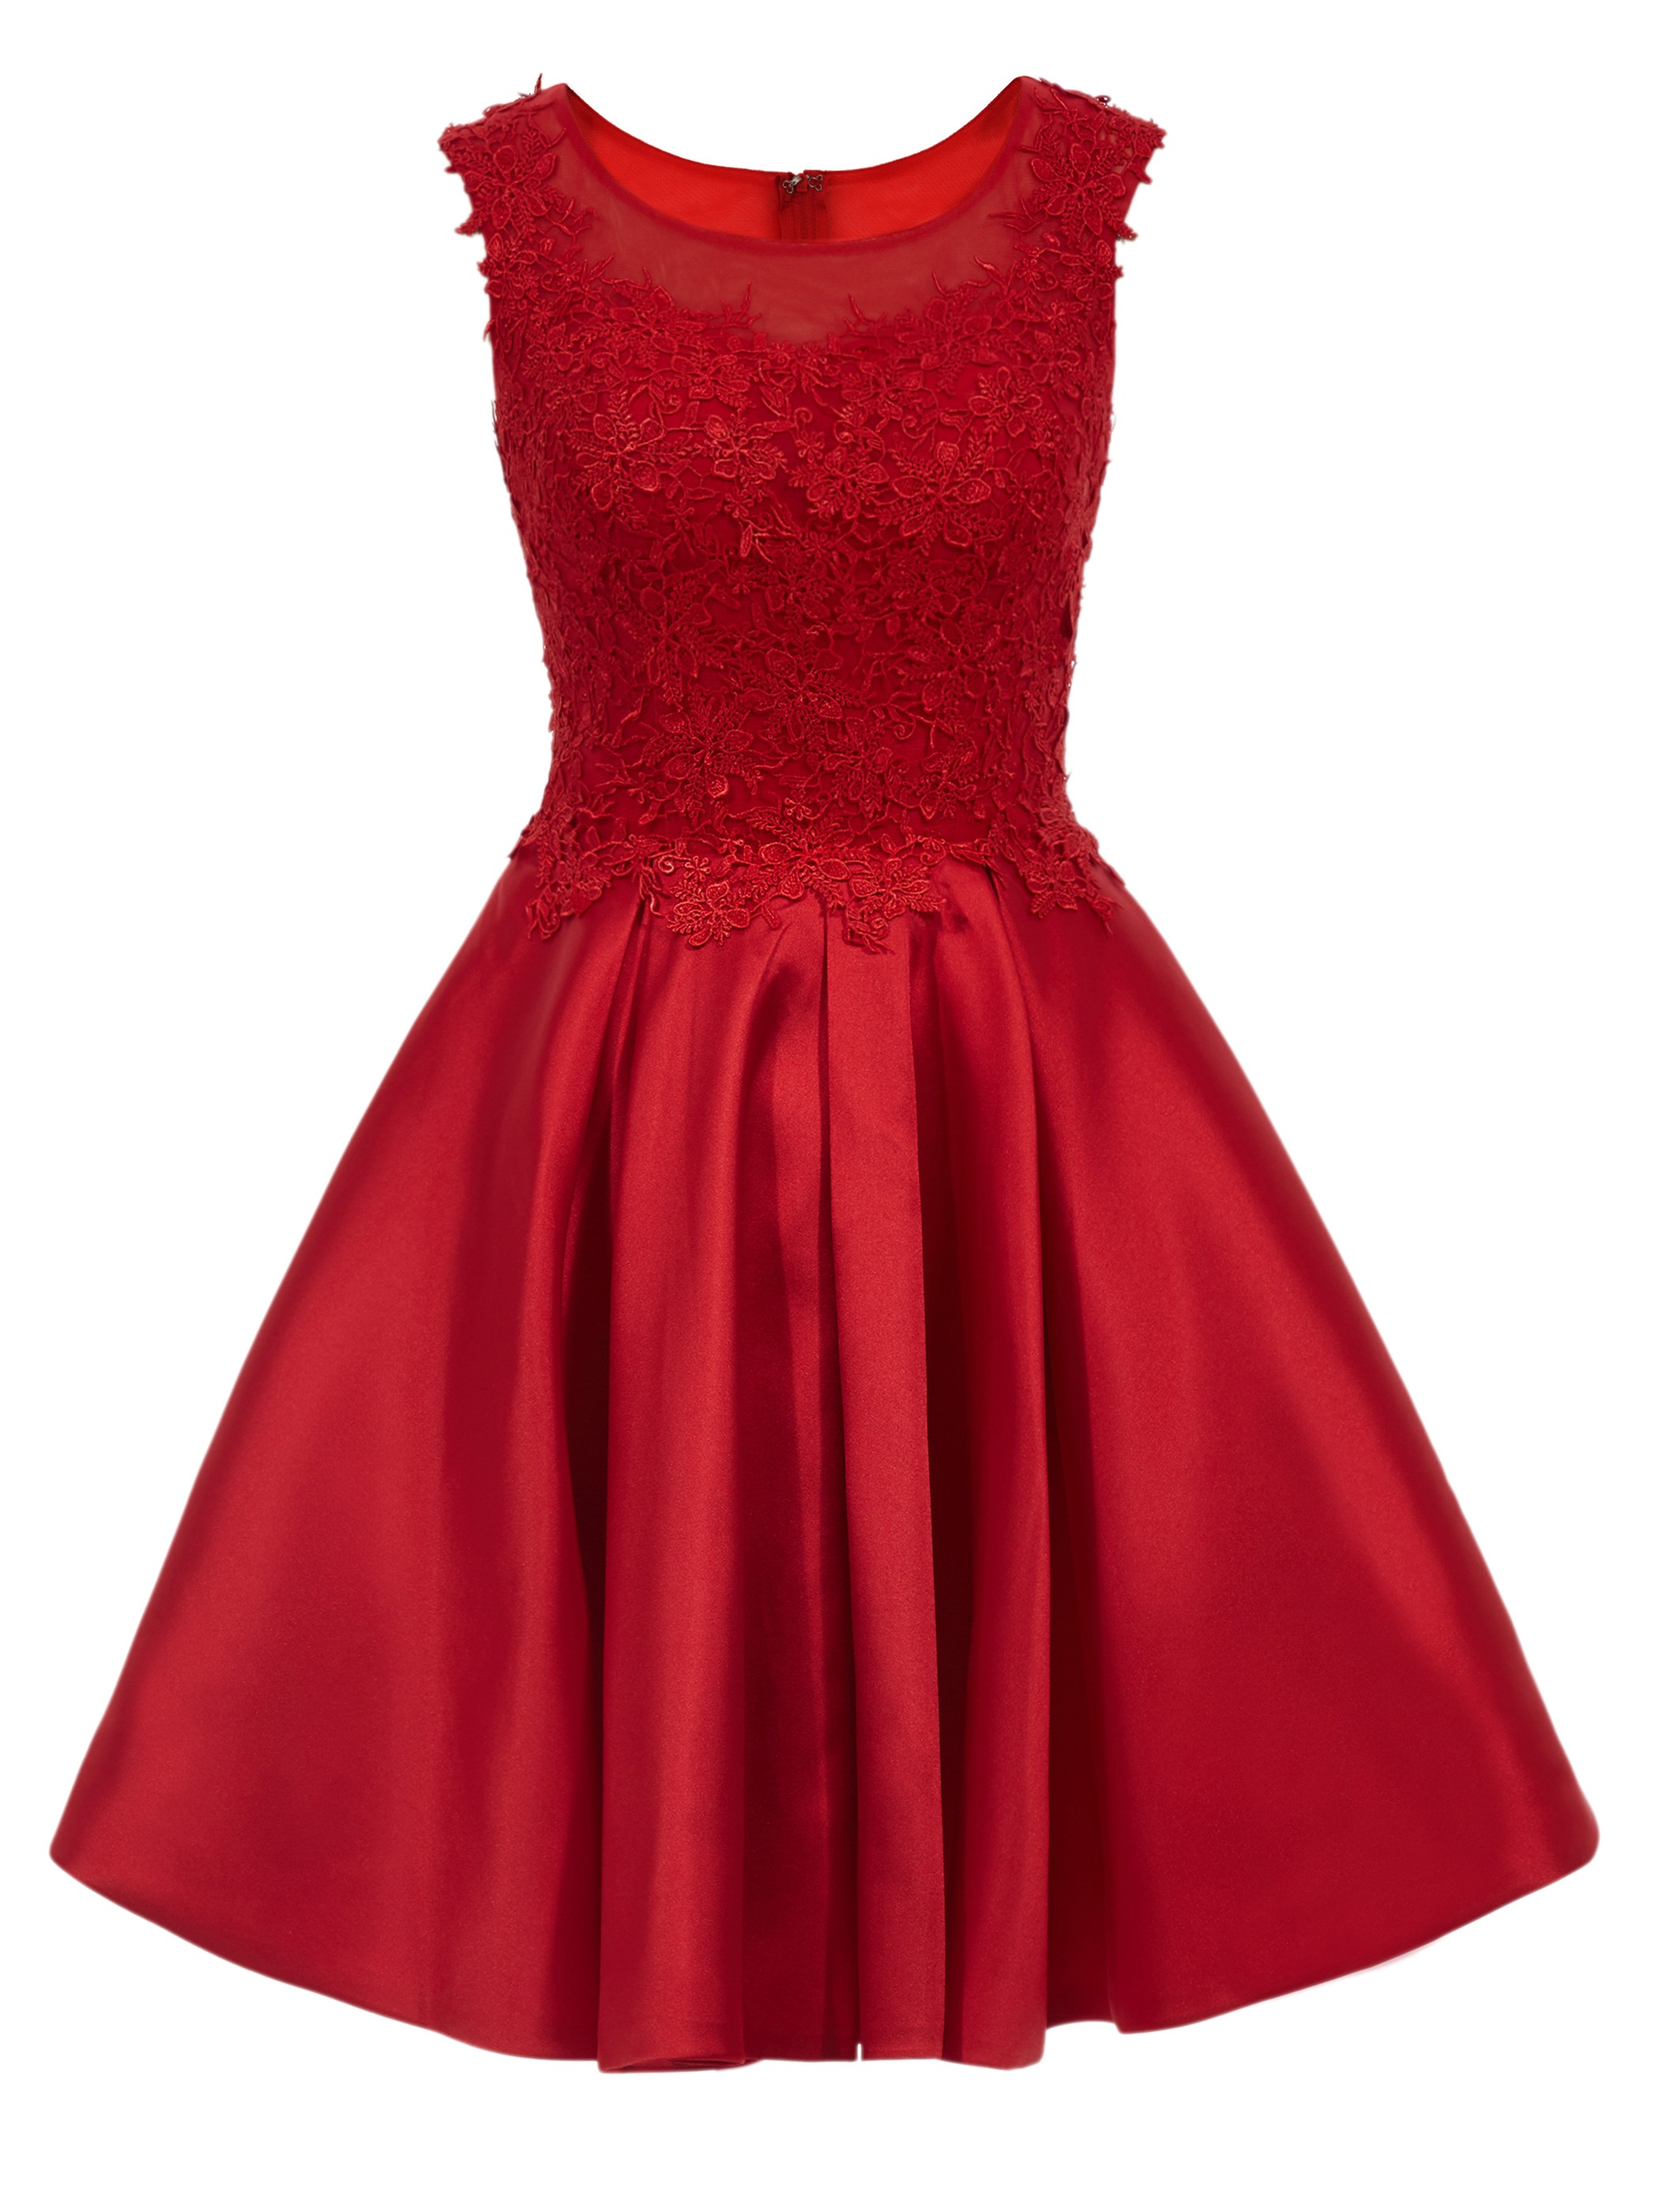 Ericdress Cap Sleeves Short A-Line Homecoming Dress With Appliques Lace